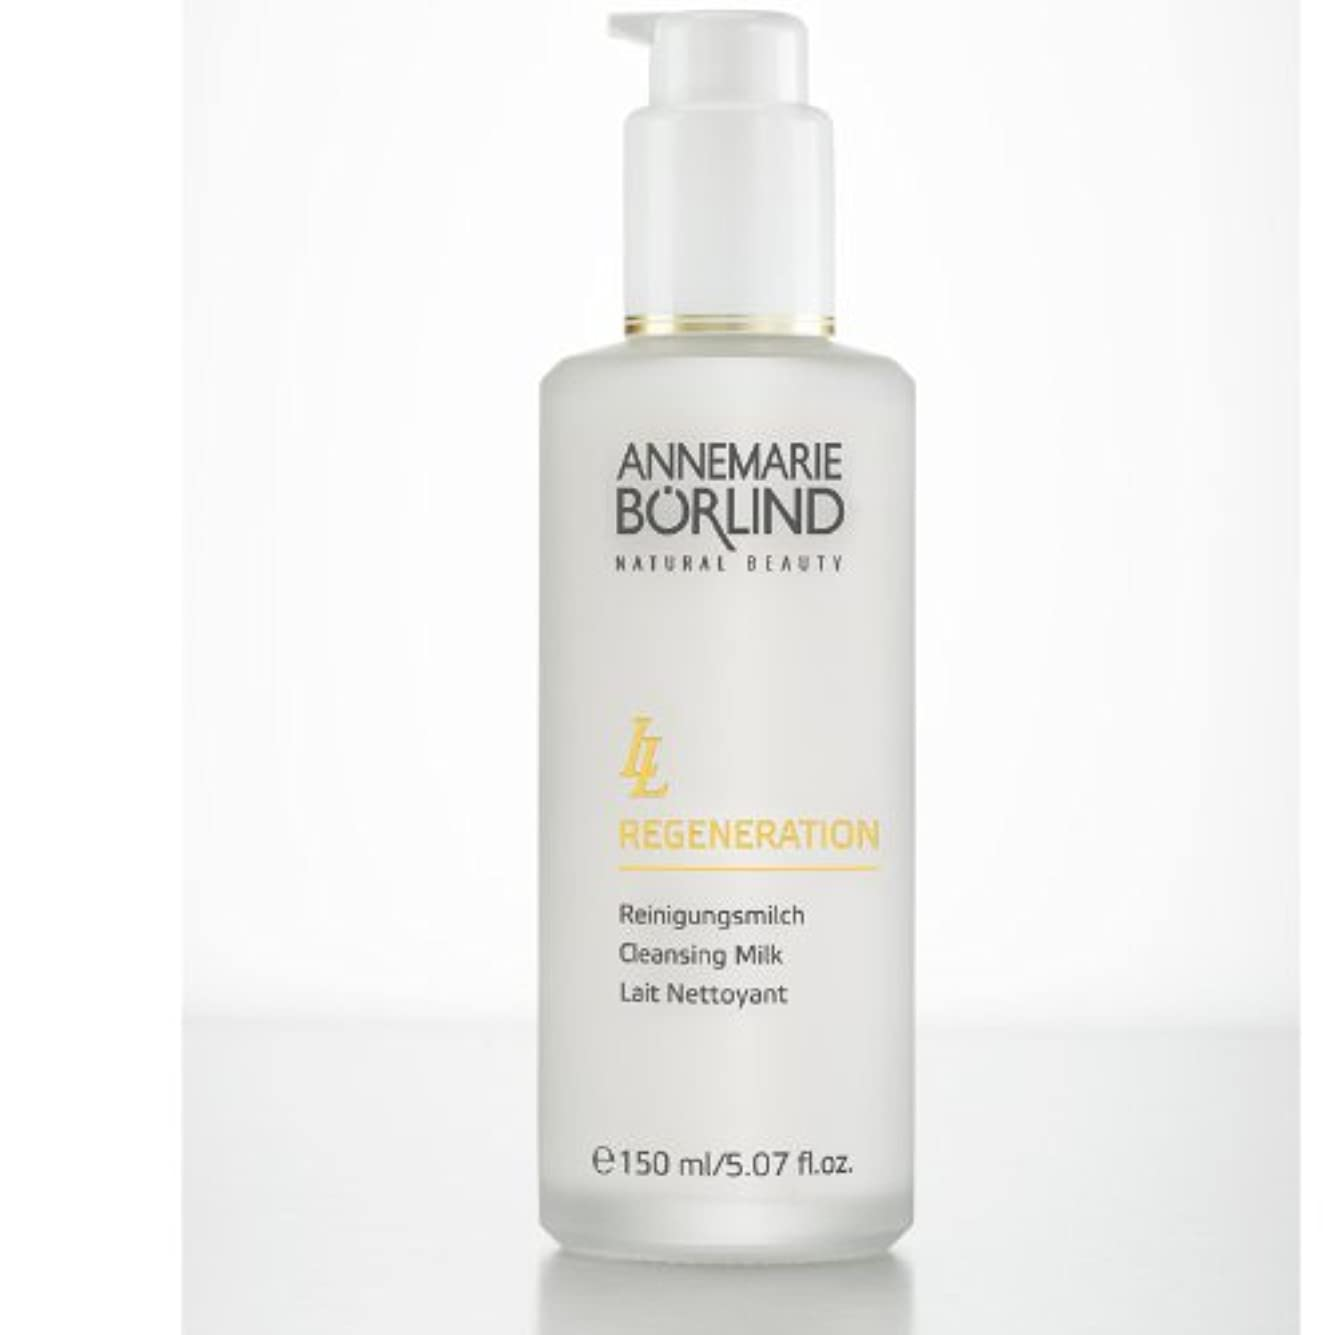 融合好色なハシーAnneMarie Borlind, LL Regeneration, Cleansing Milk, 5.07 fl oz (150 ml)